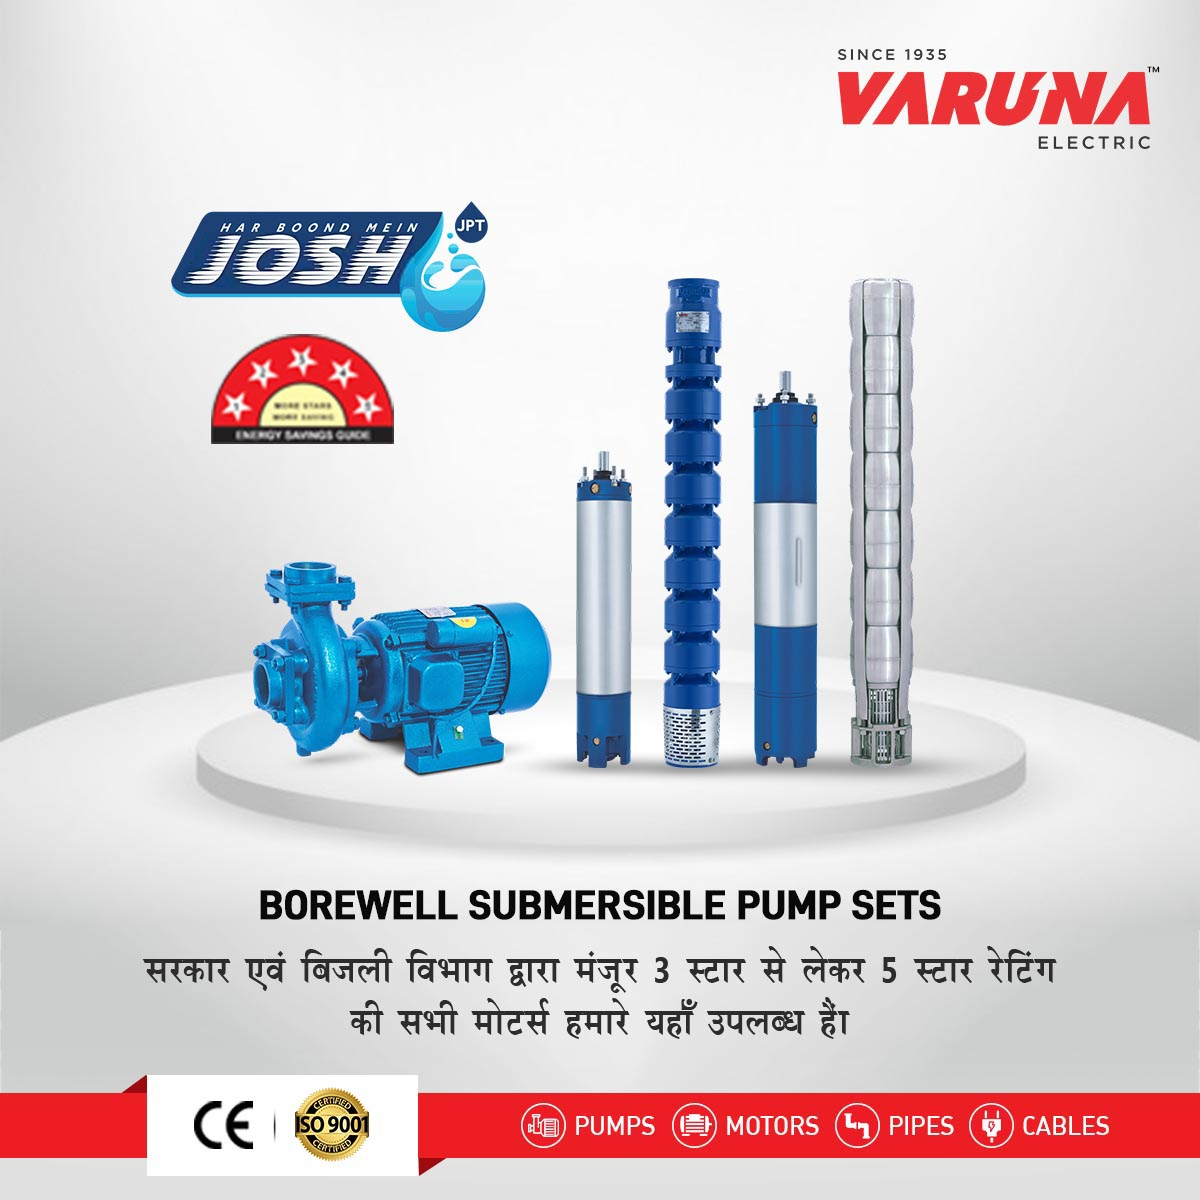 Varuna Pump Products at Affordable Prices